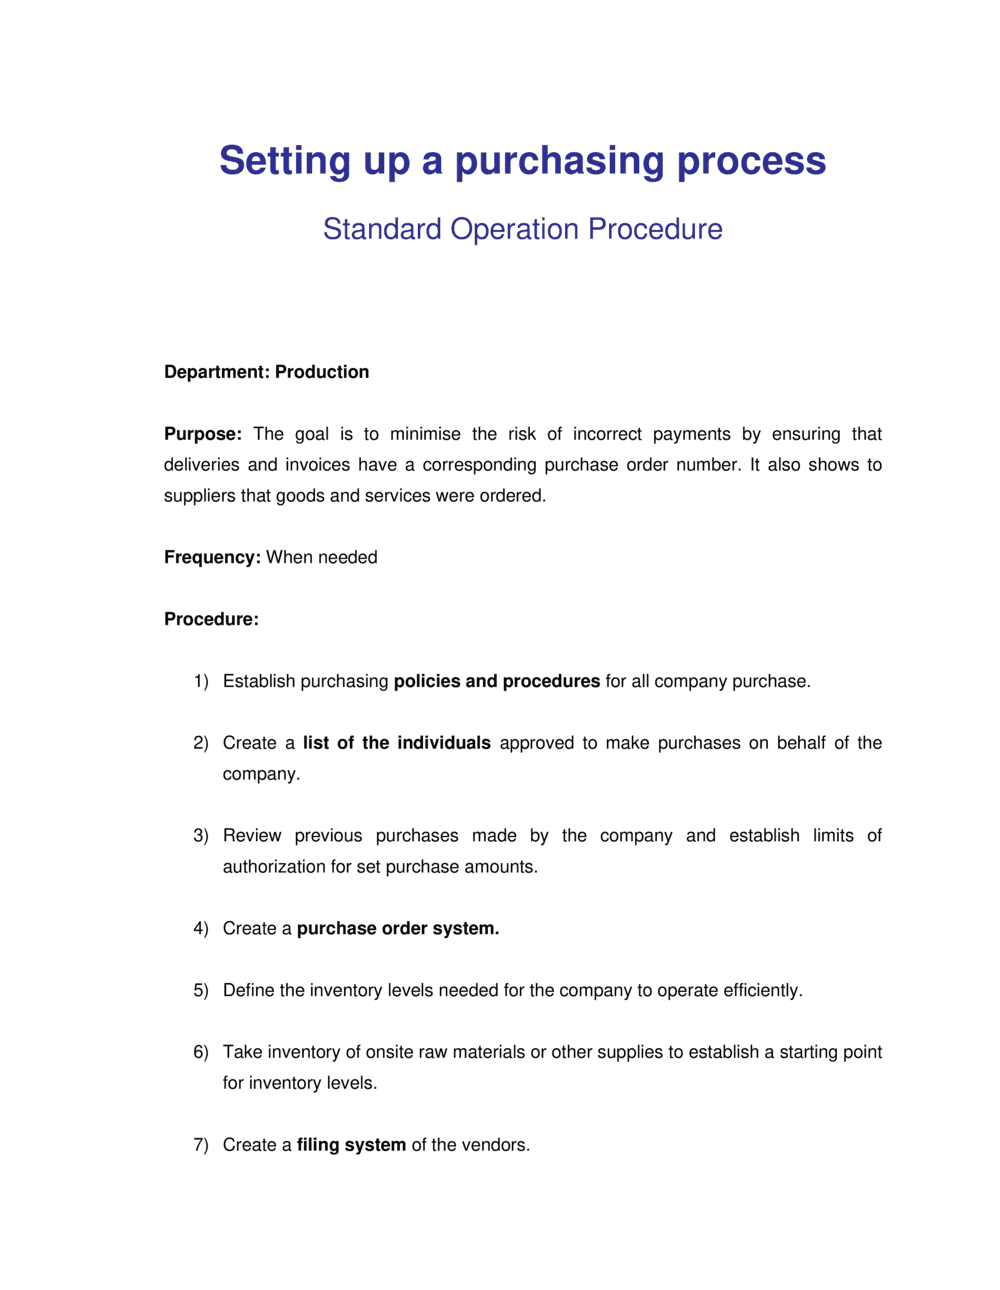 Business-in-a-Box's How to Setup a Purchasing Process